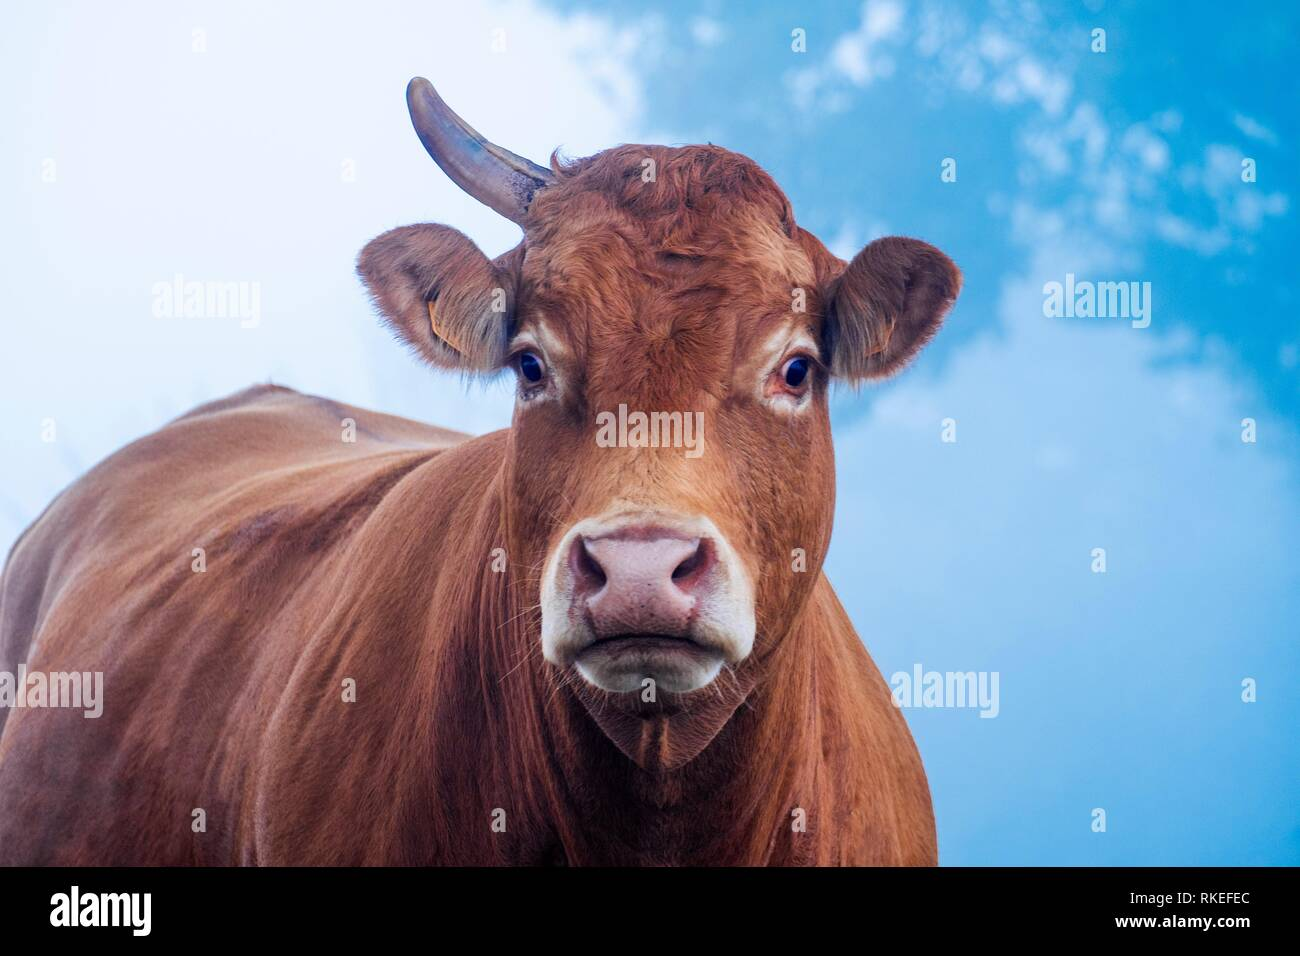 France, Auvergne, Cantal, cow MISSING A HORN, in aurumn, near Marcoles. - Stock Image